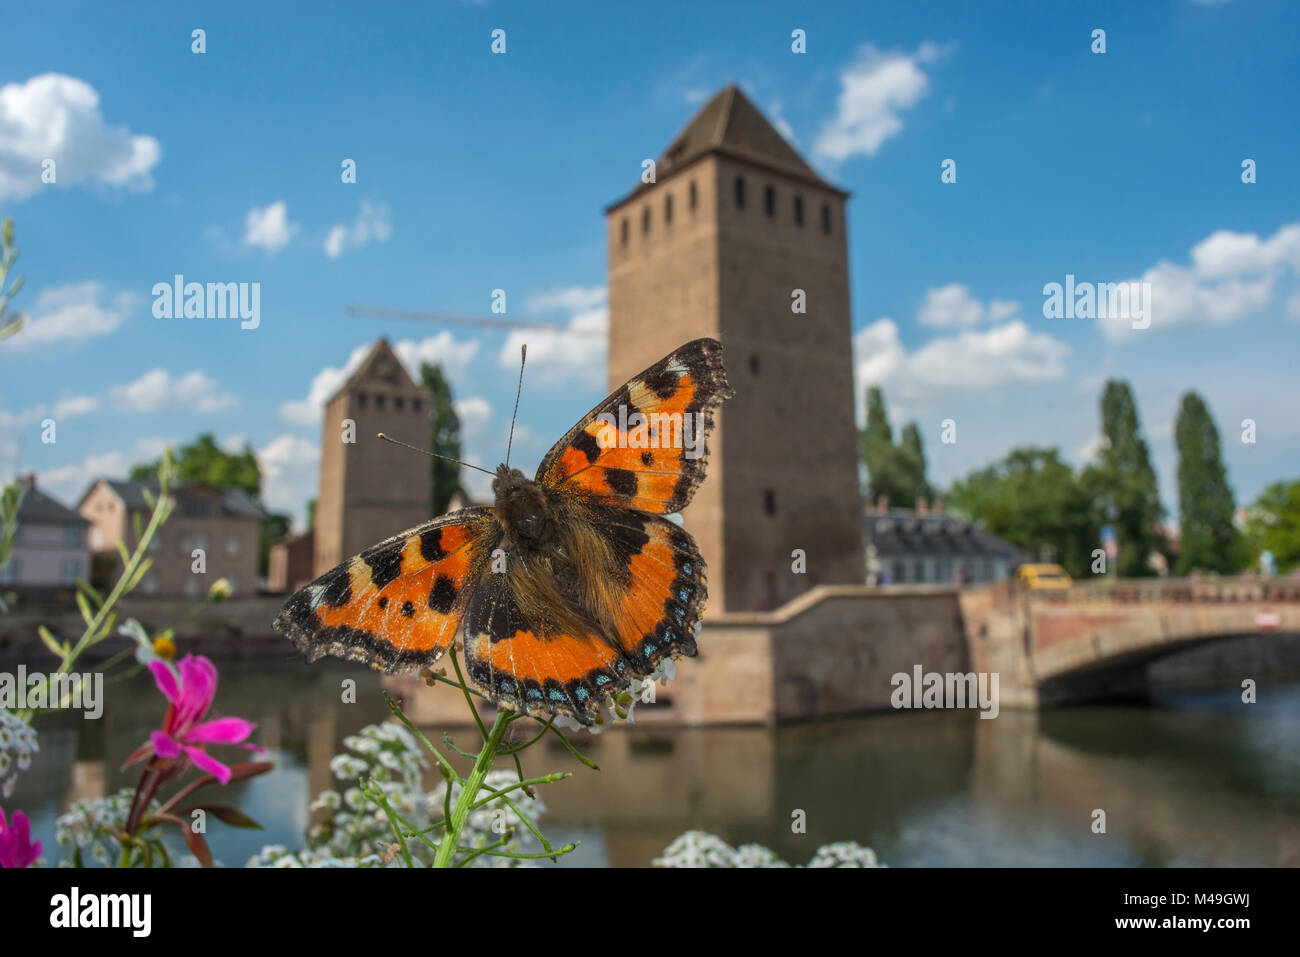 Tortoisehell butterfly (Aglais urticae) with  Ponts Couverts in distance,  Strasbourg, France. June 2014. - Stock Image